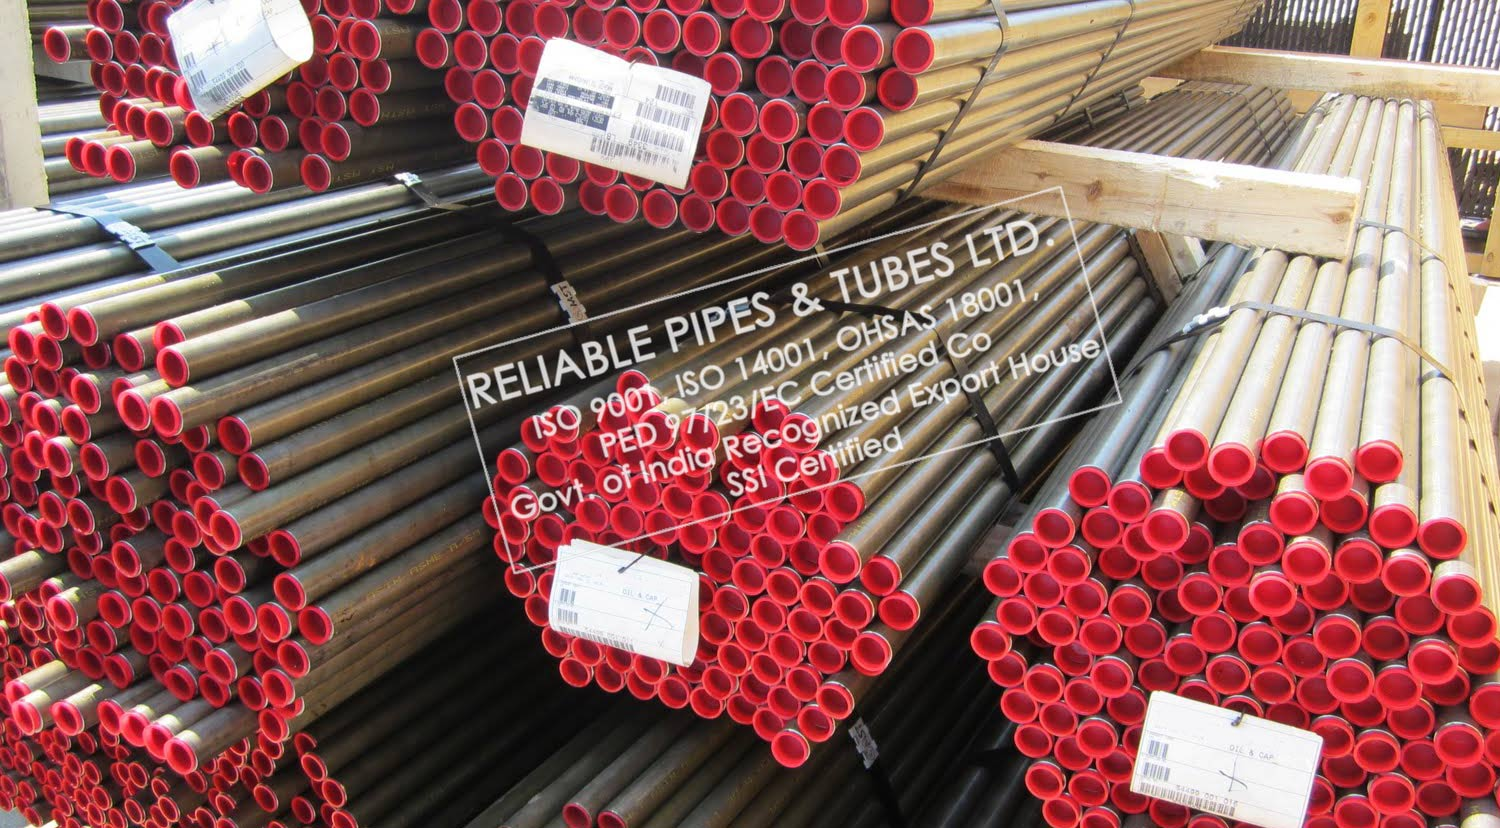 x65-pipe-supplier